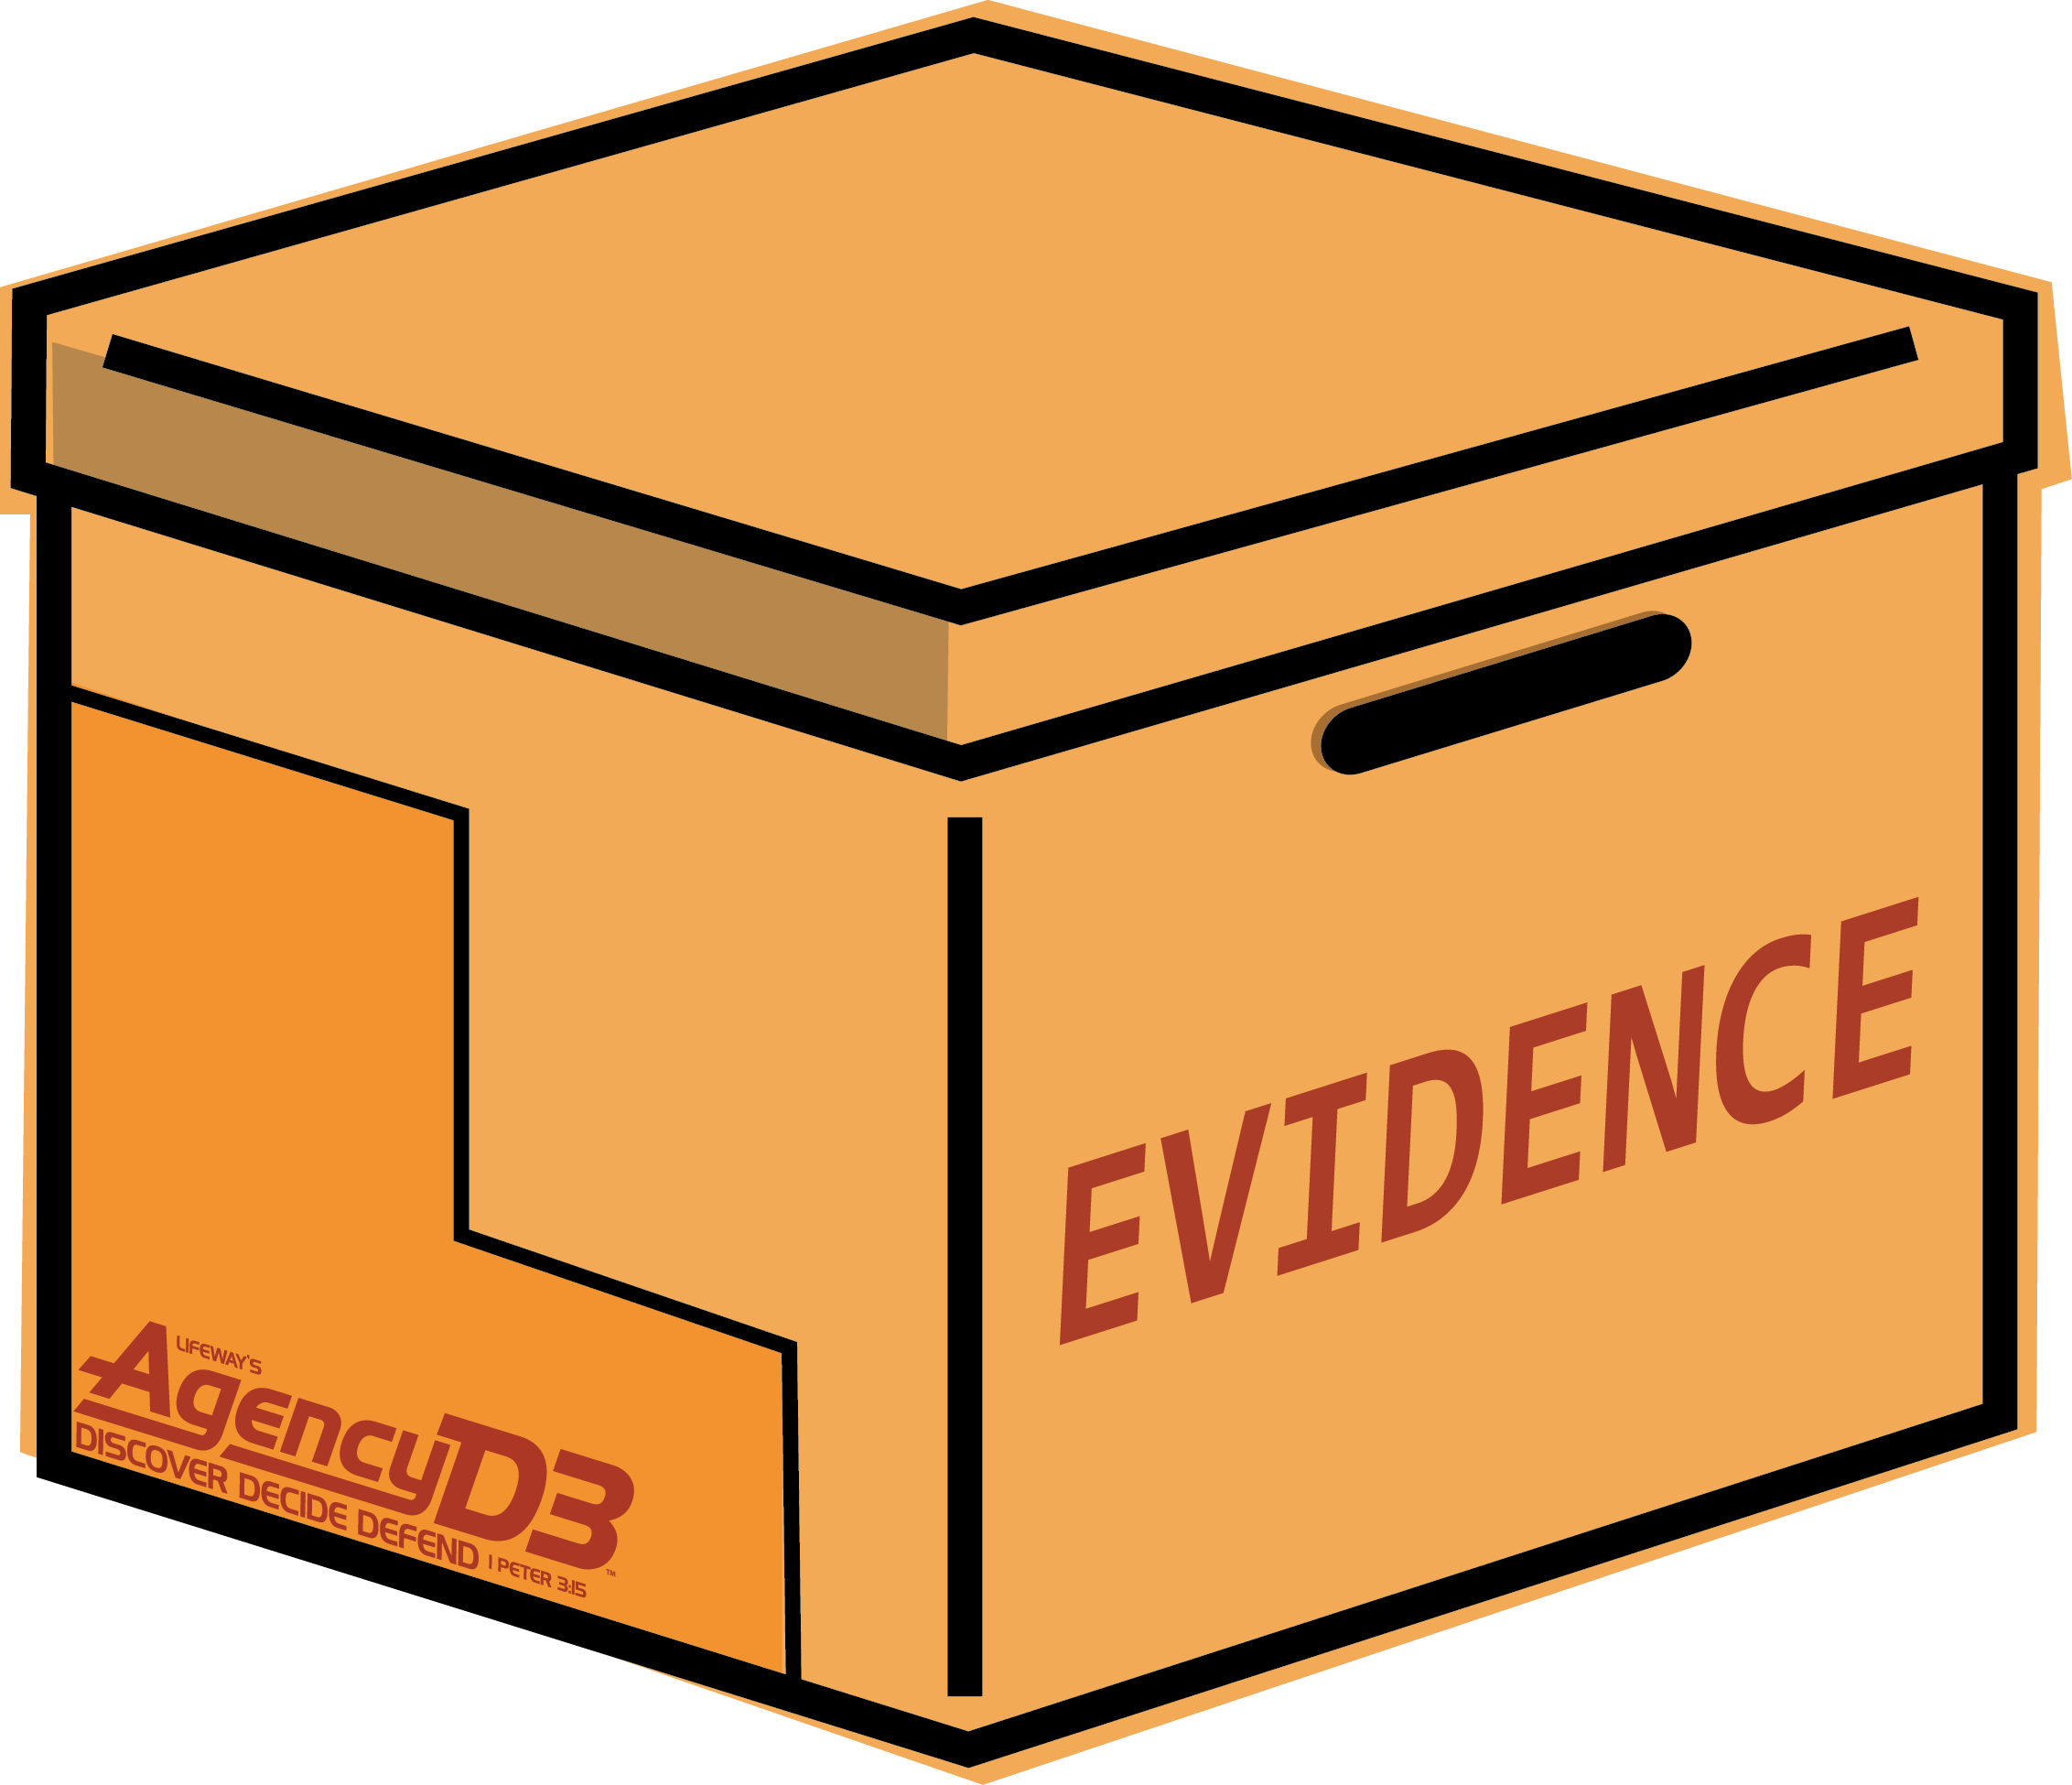 Free Evidence Stamp Png, Download Free Clip Art, Free Clip.